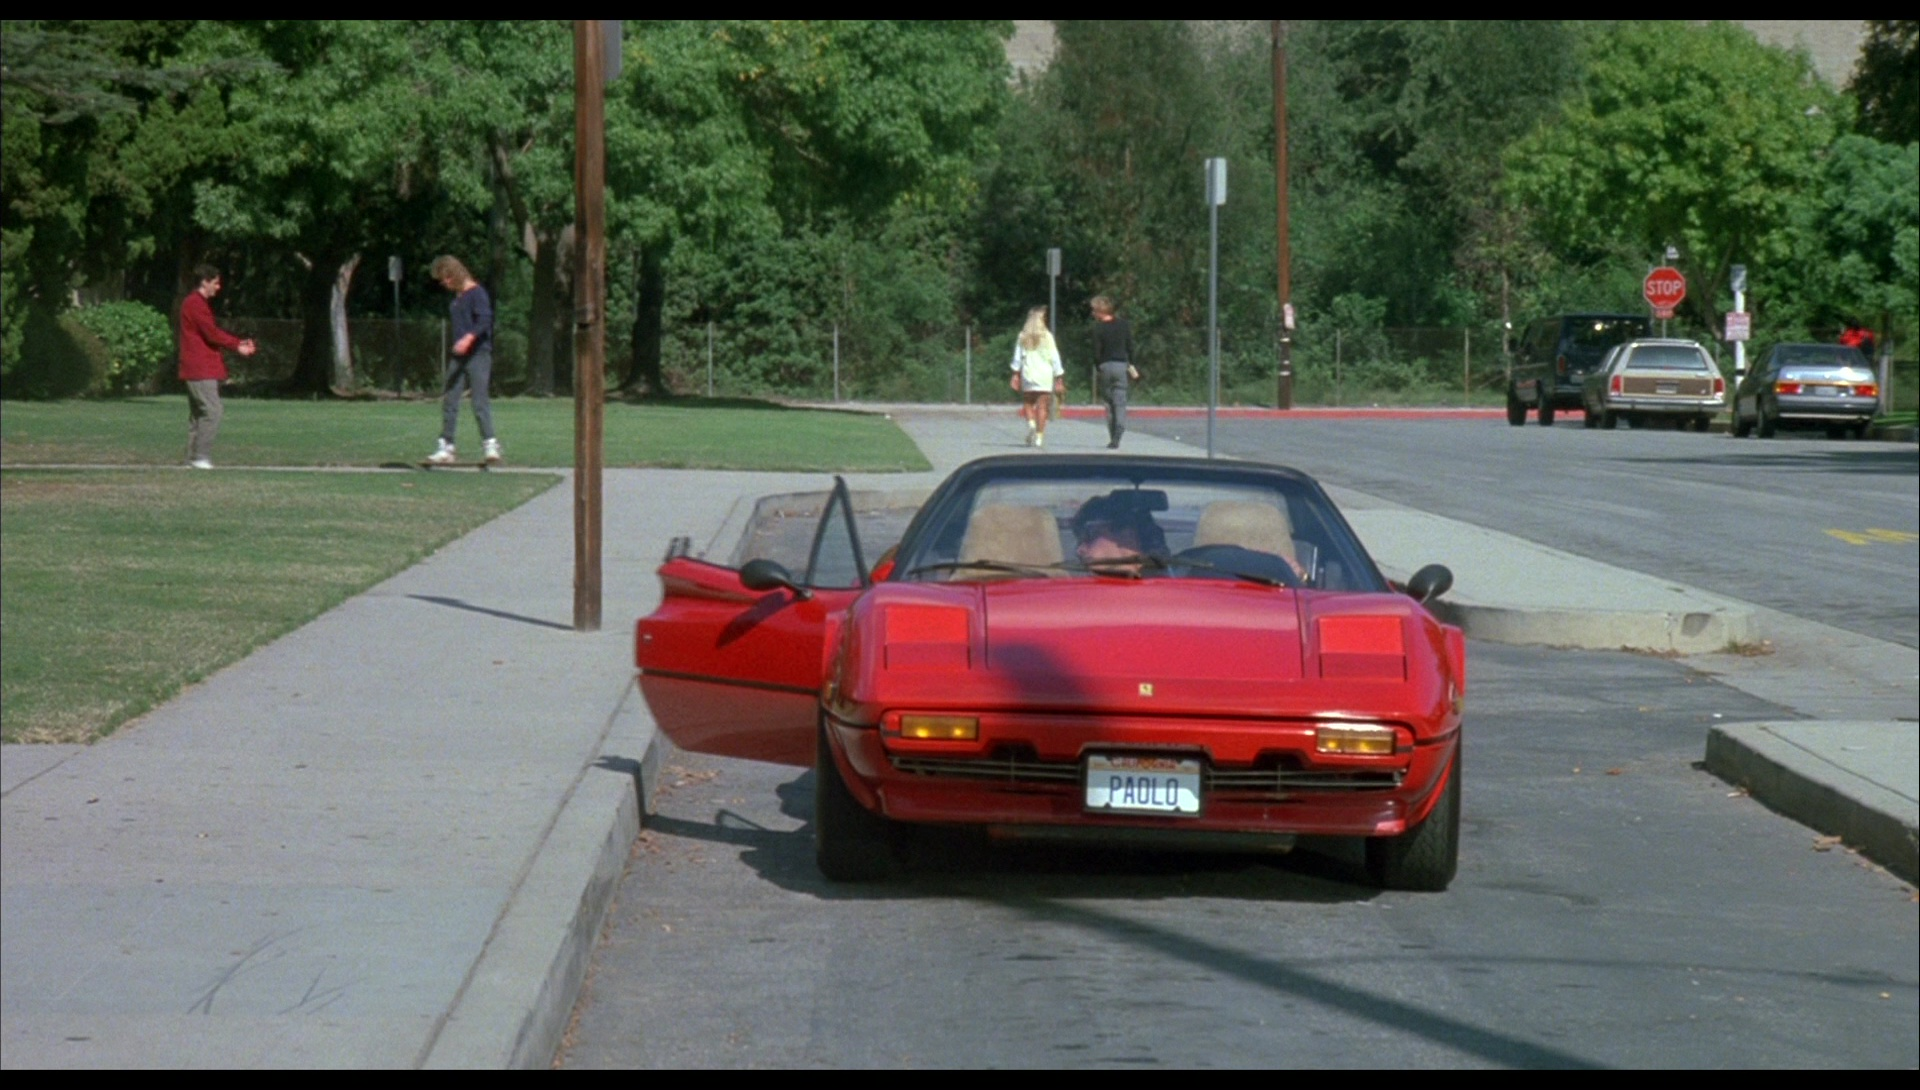 Ferrari 308 Gts Car In License To Drive 1988 Movie Scenes